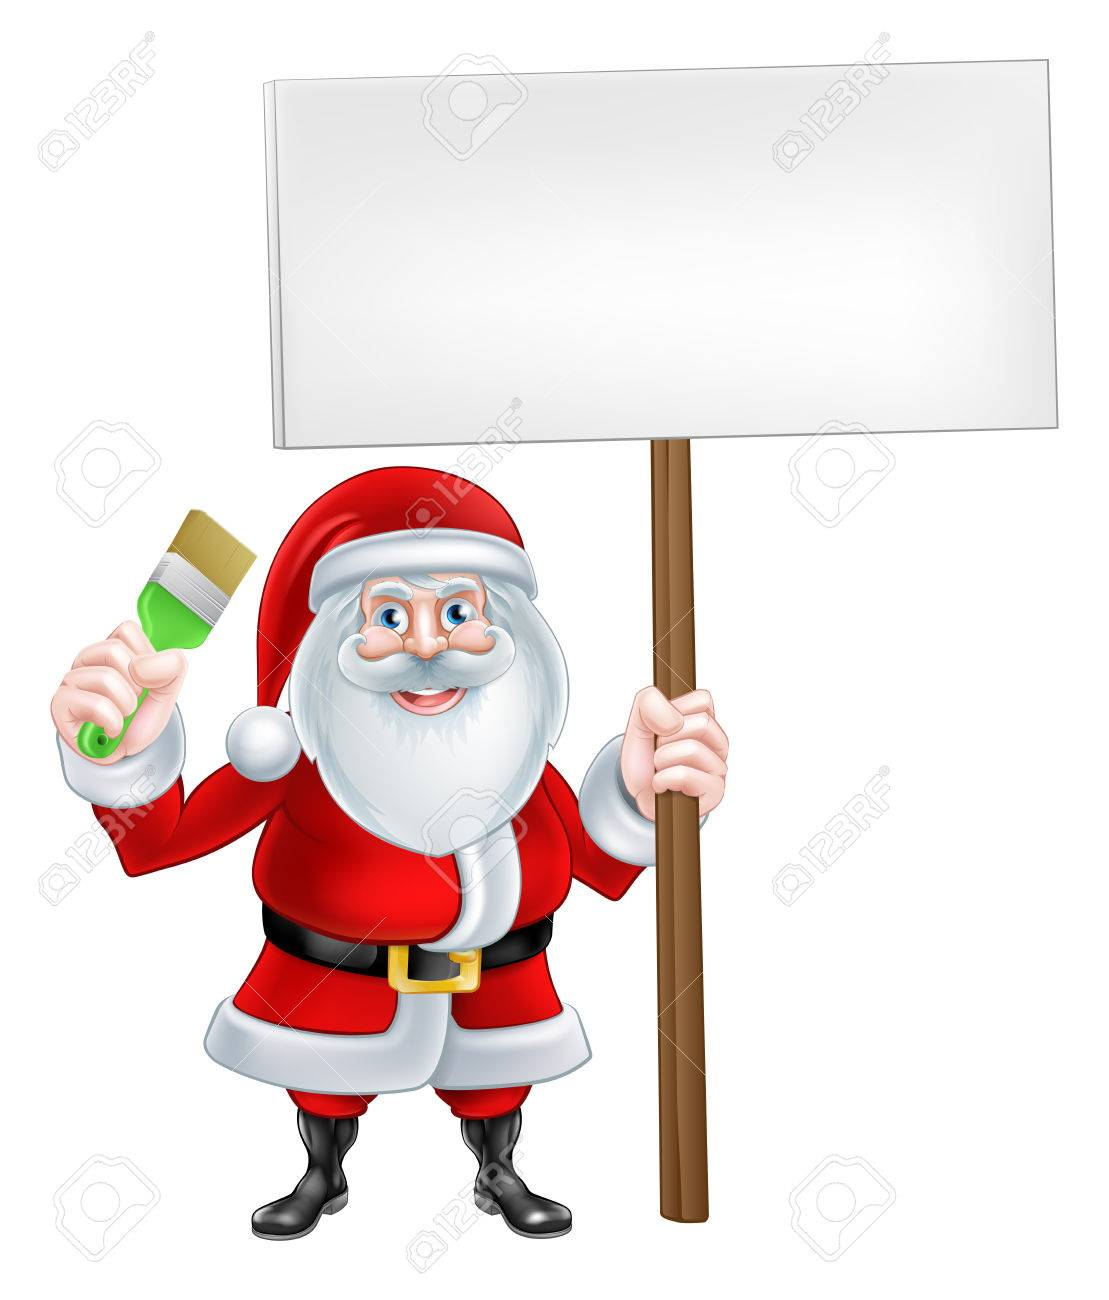 1109x1300 A Christmas Cartoon Illustration Of Santa Claus Holding A Paint